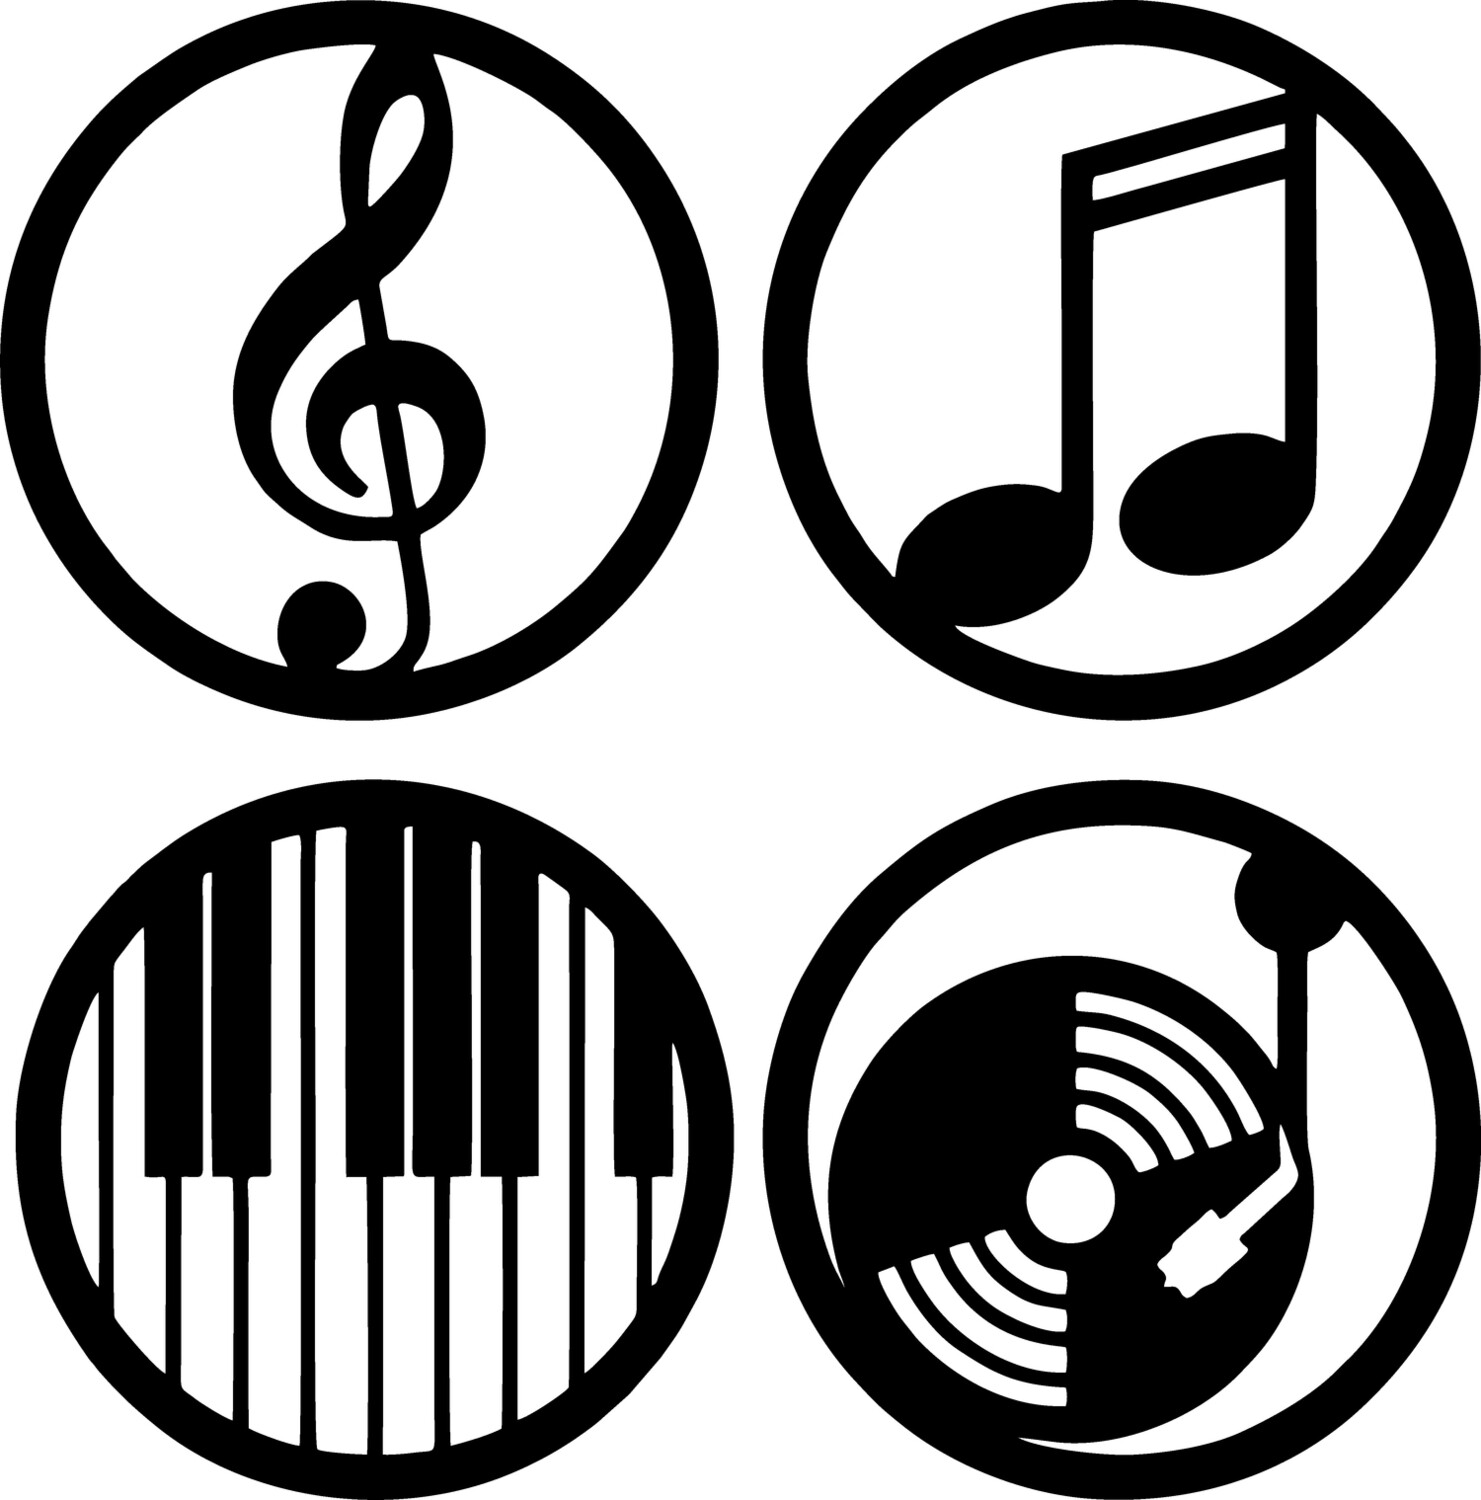 Symbols of Music in Black Color Design Wooden Wall Hanging (Pack of 4)